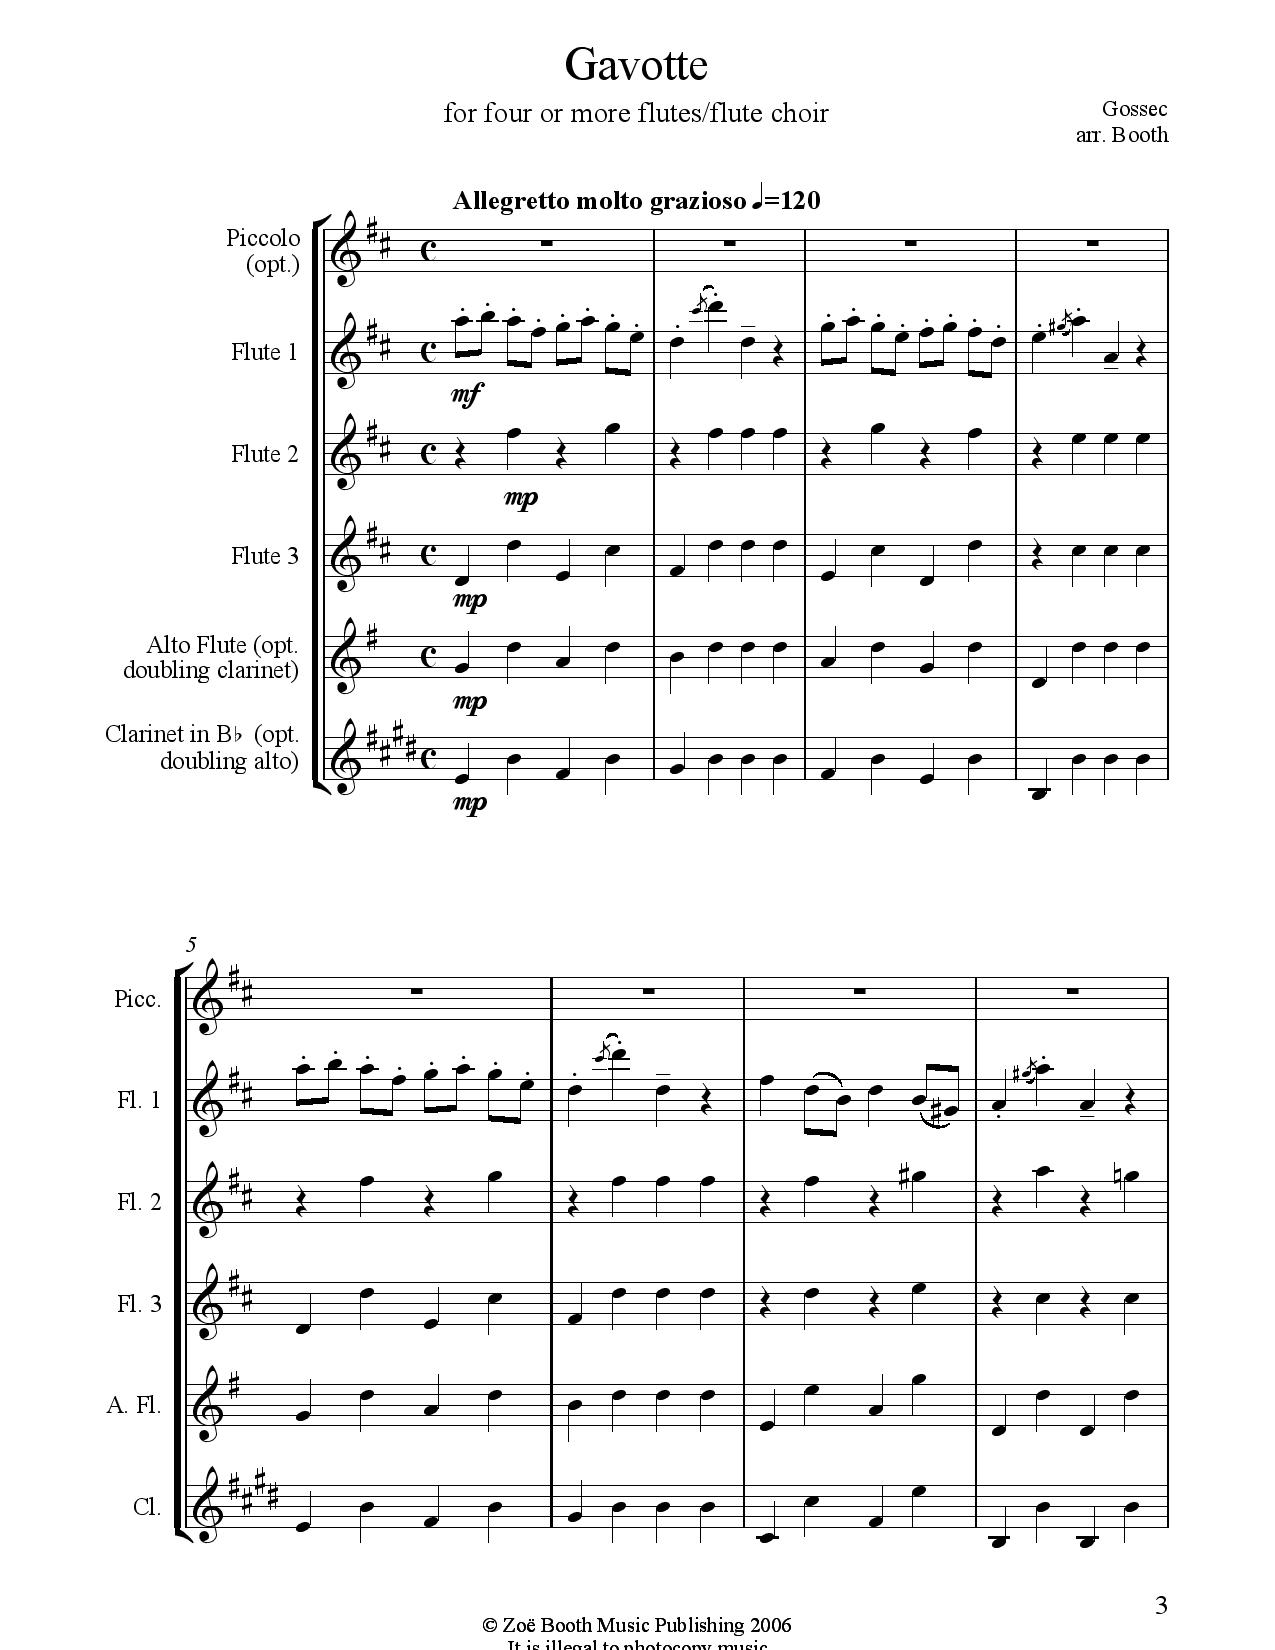 Gavotte by Gossec,  Arranged by Zoë Booth for three or more flutes/flute choir